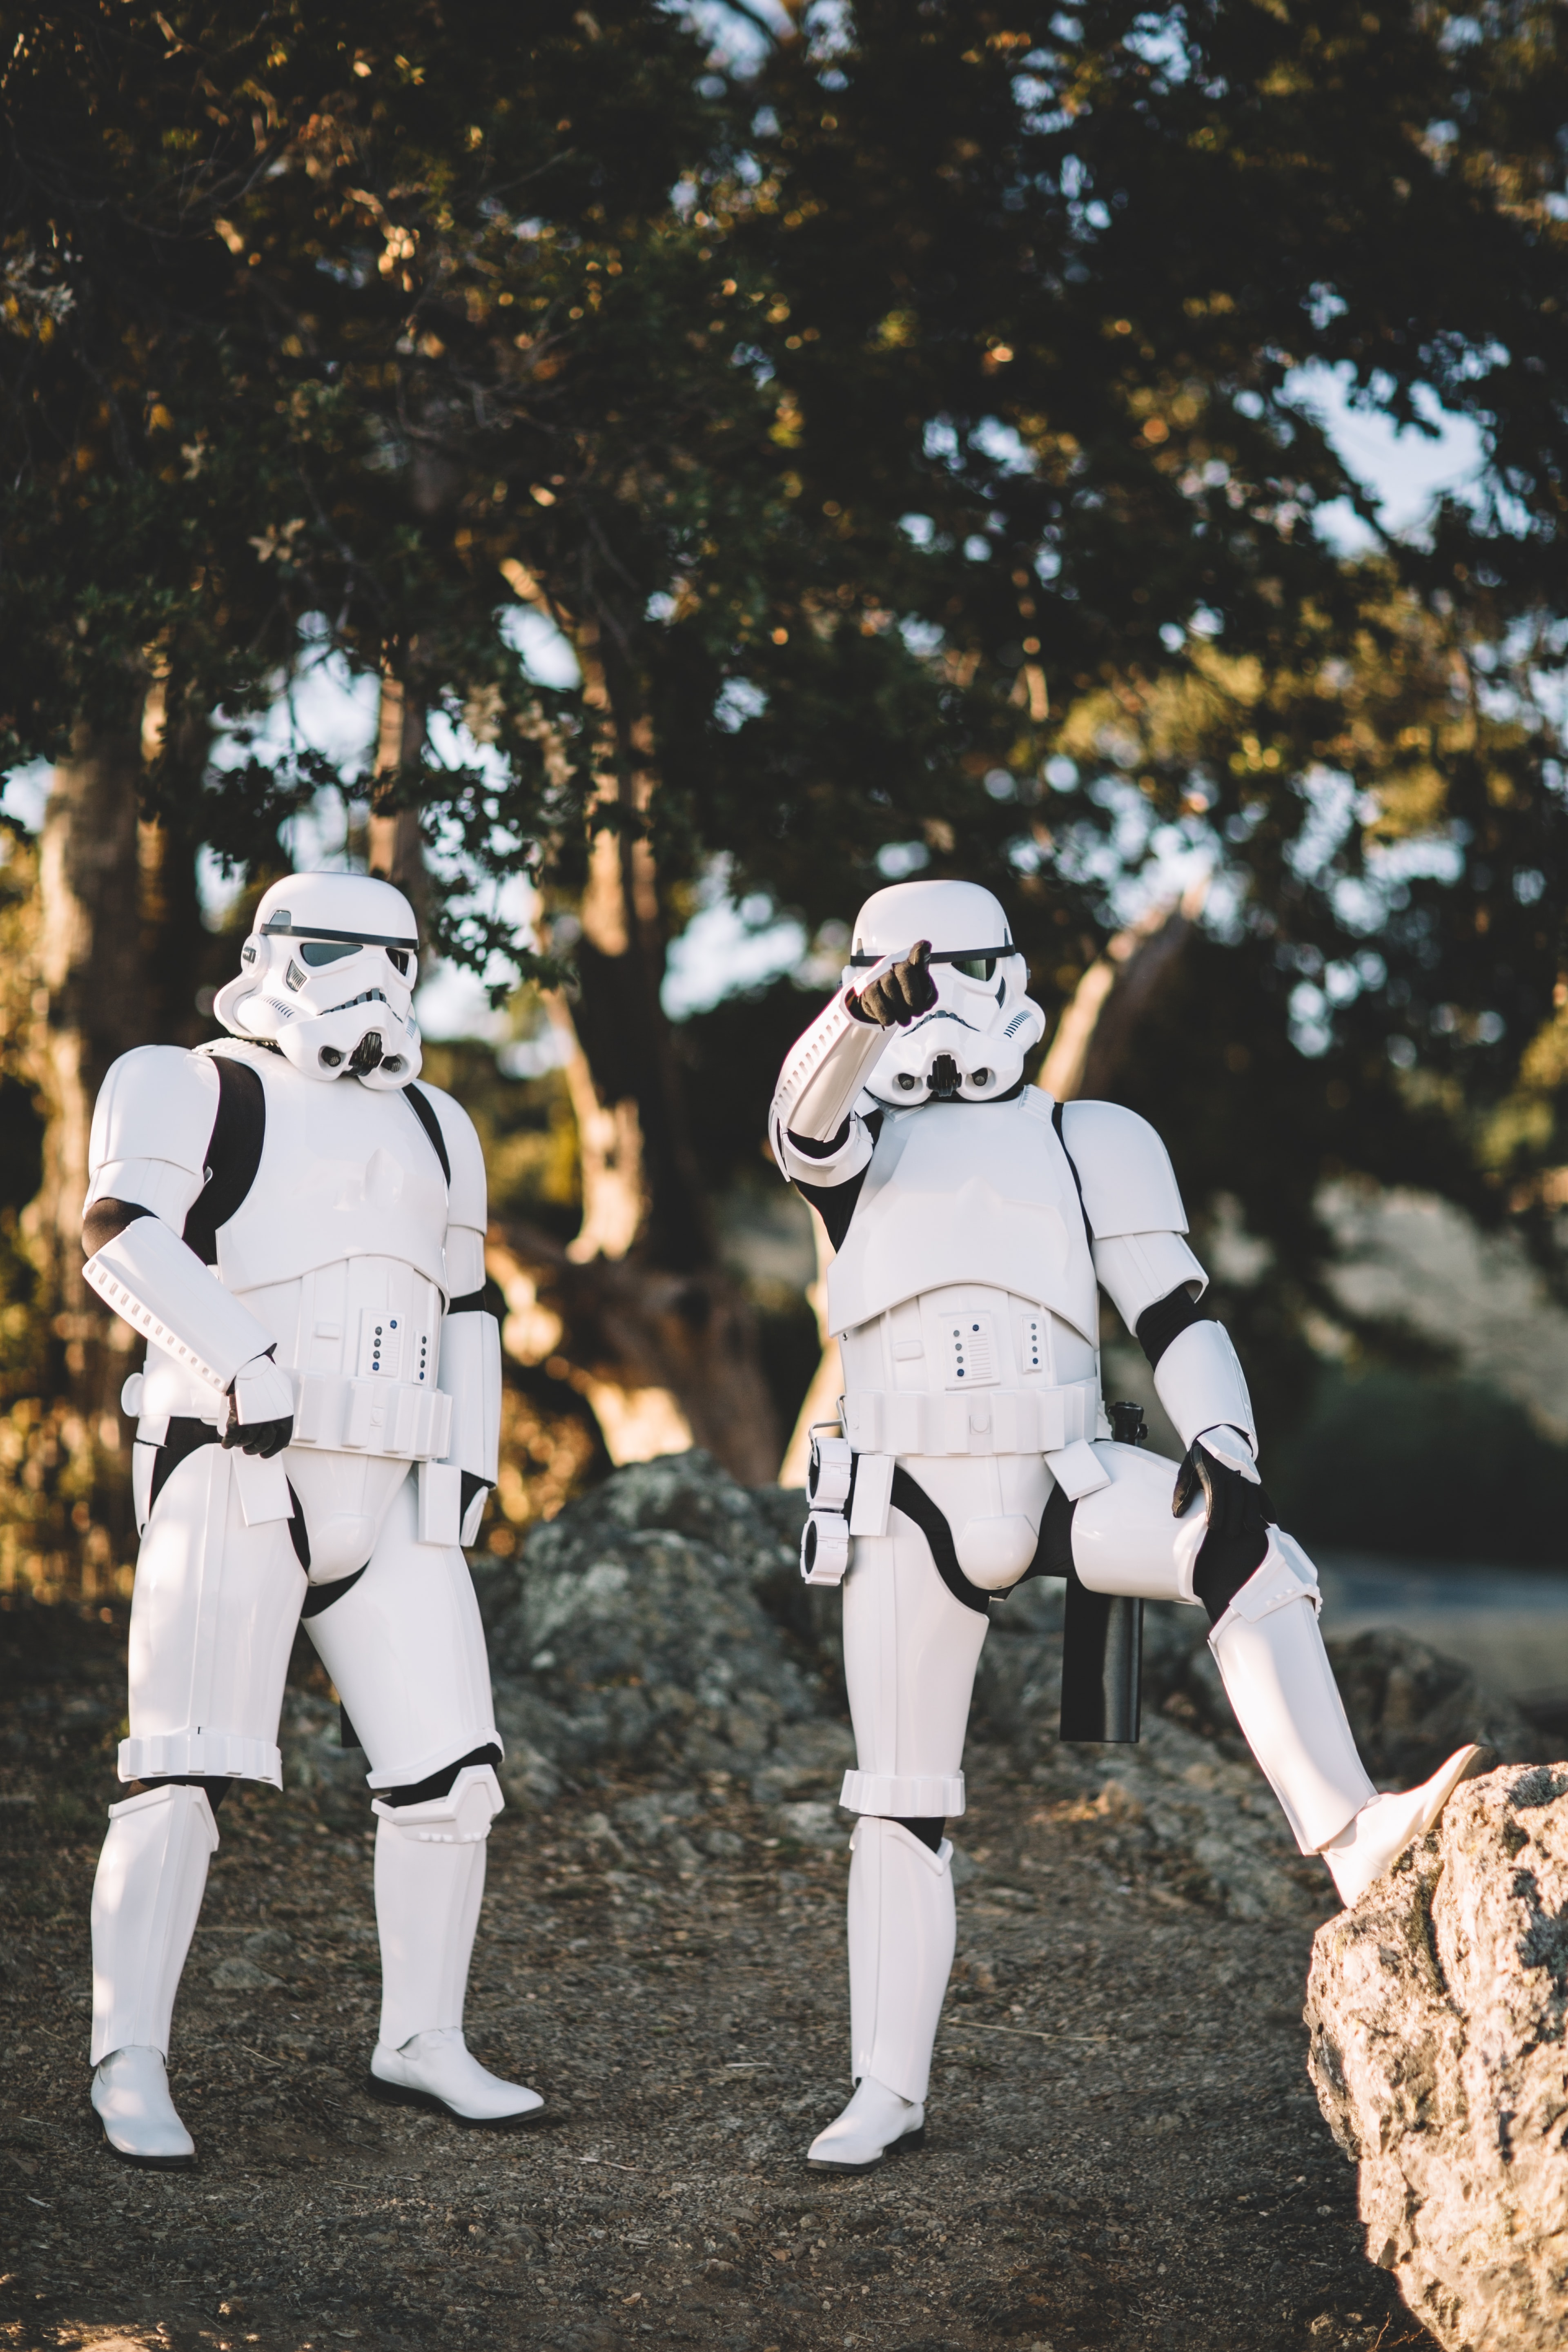 Two people in Stormtrooper costumes in Mount Tamalpais.